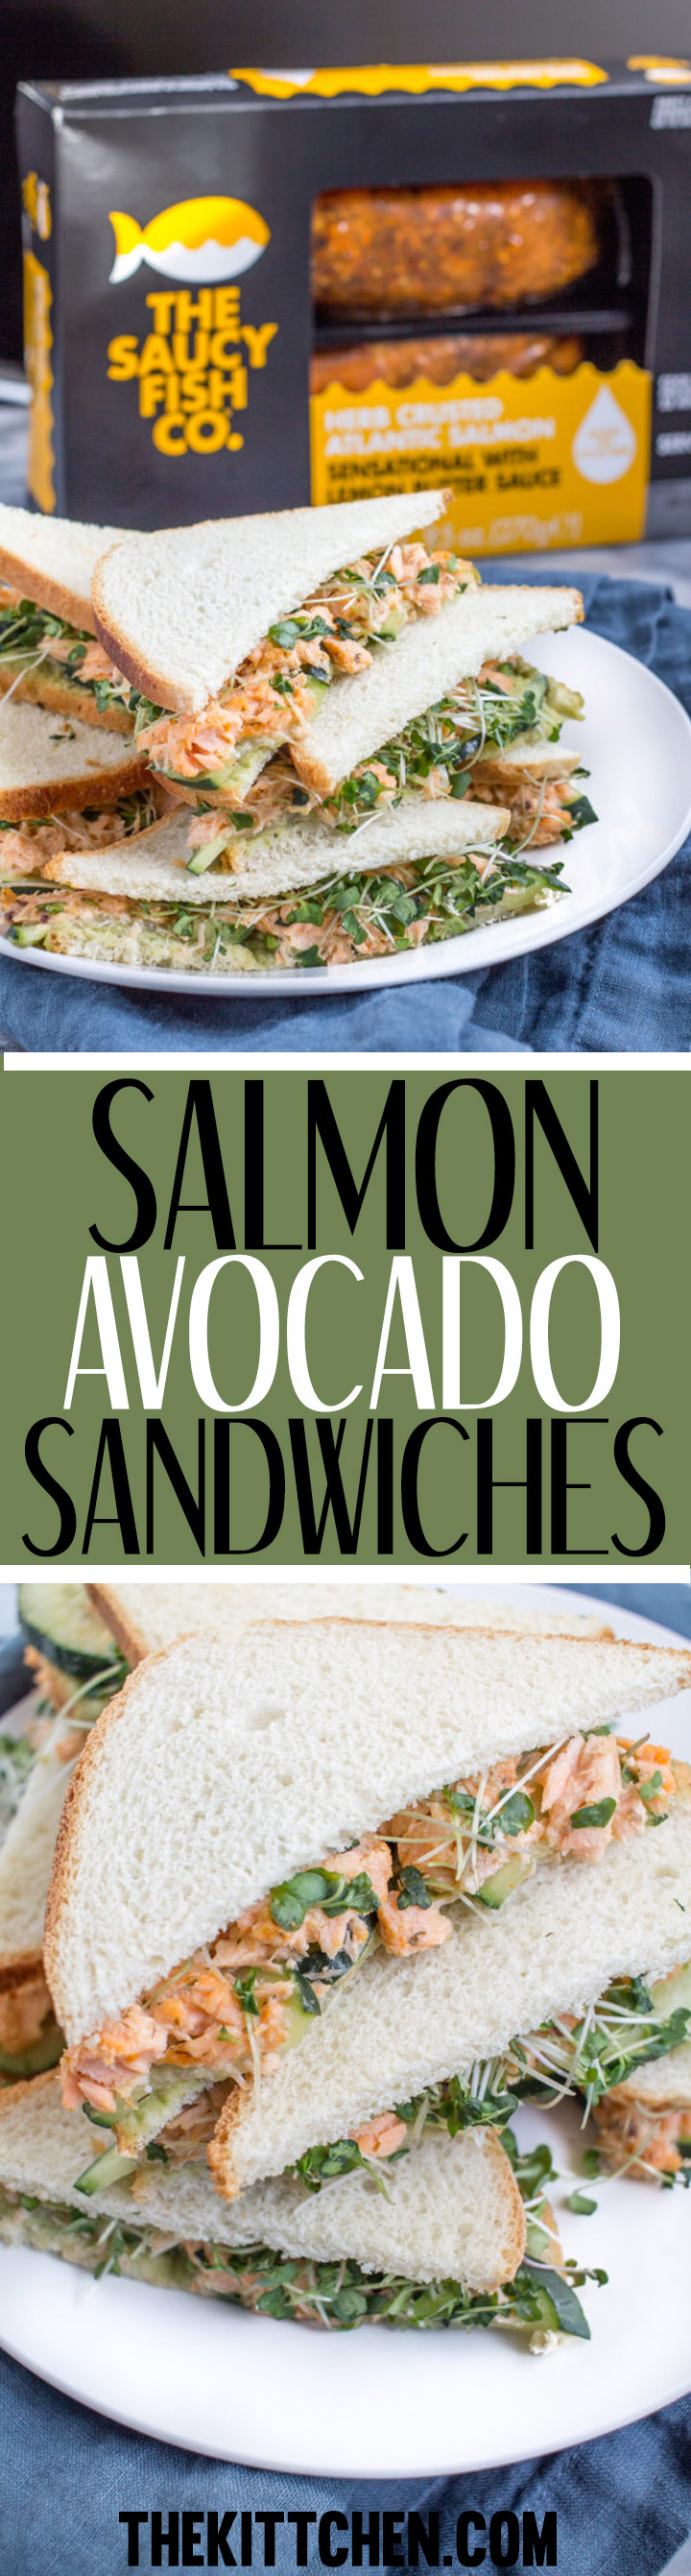 A simple recipe for Salmon Avocado Sandwiches - perfect to serve at a lunch.